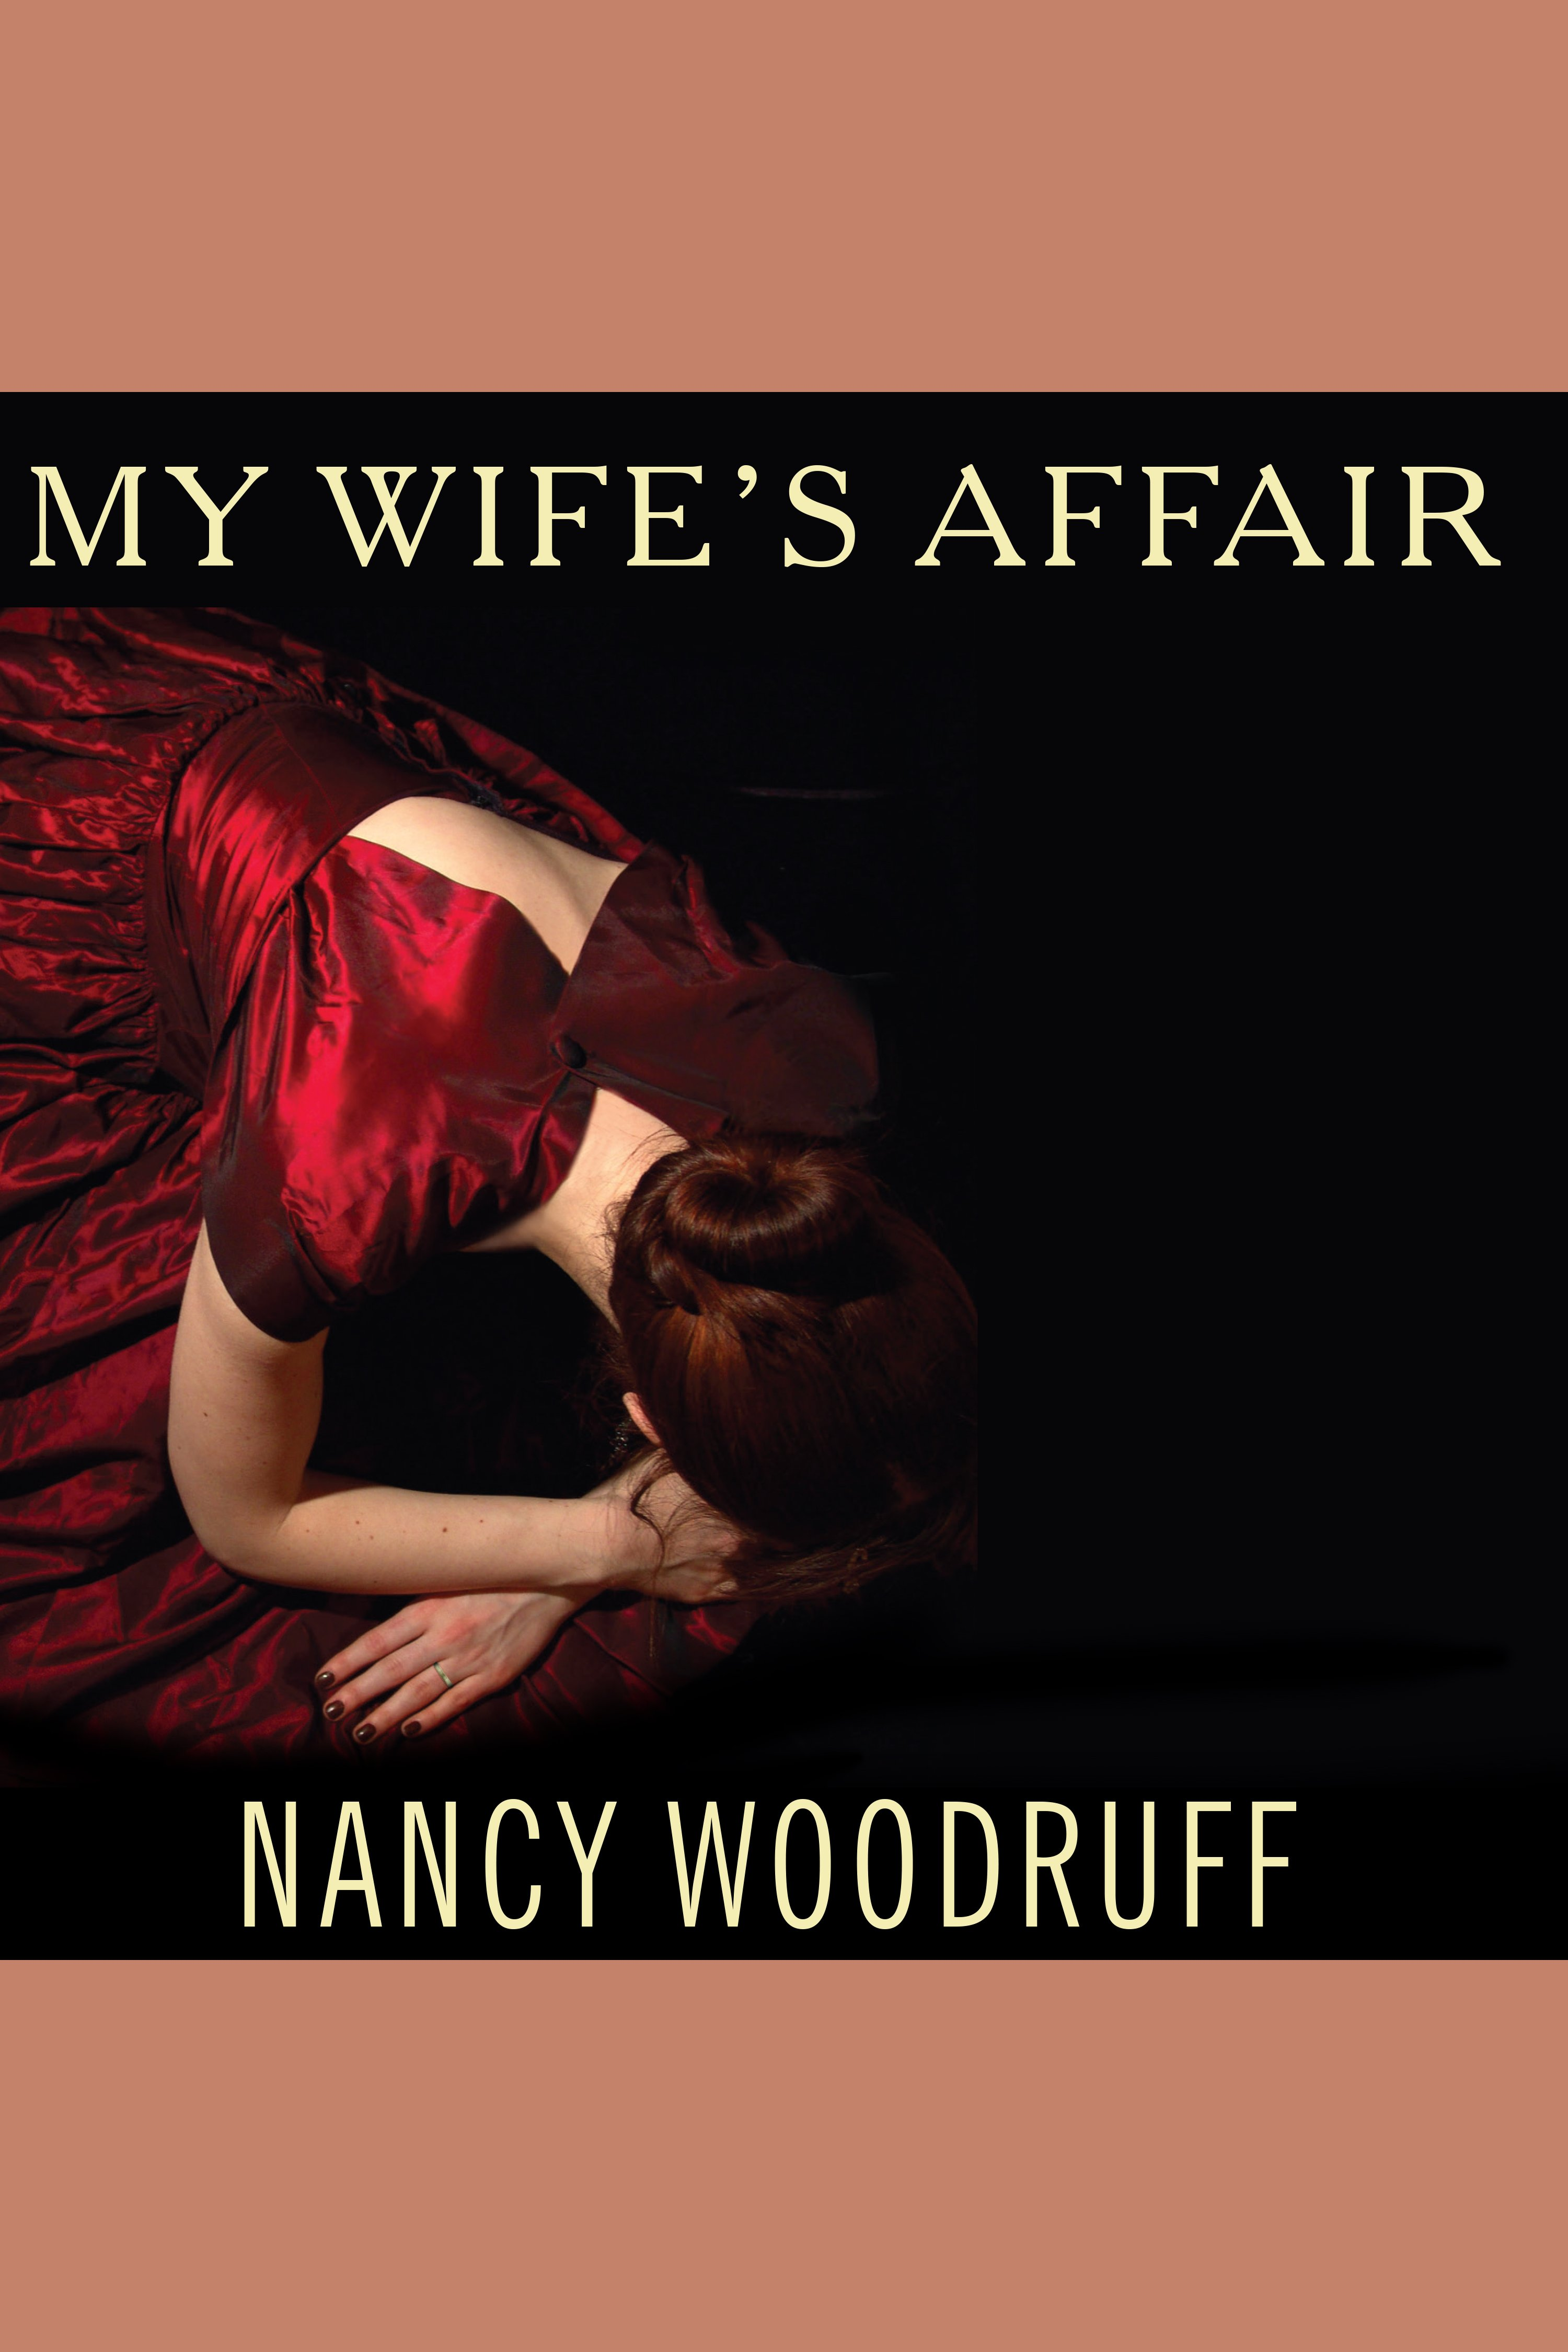 My wife's affair cover image